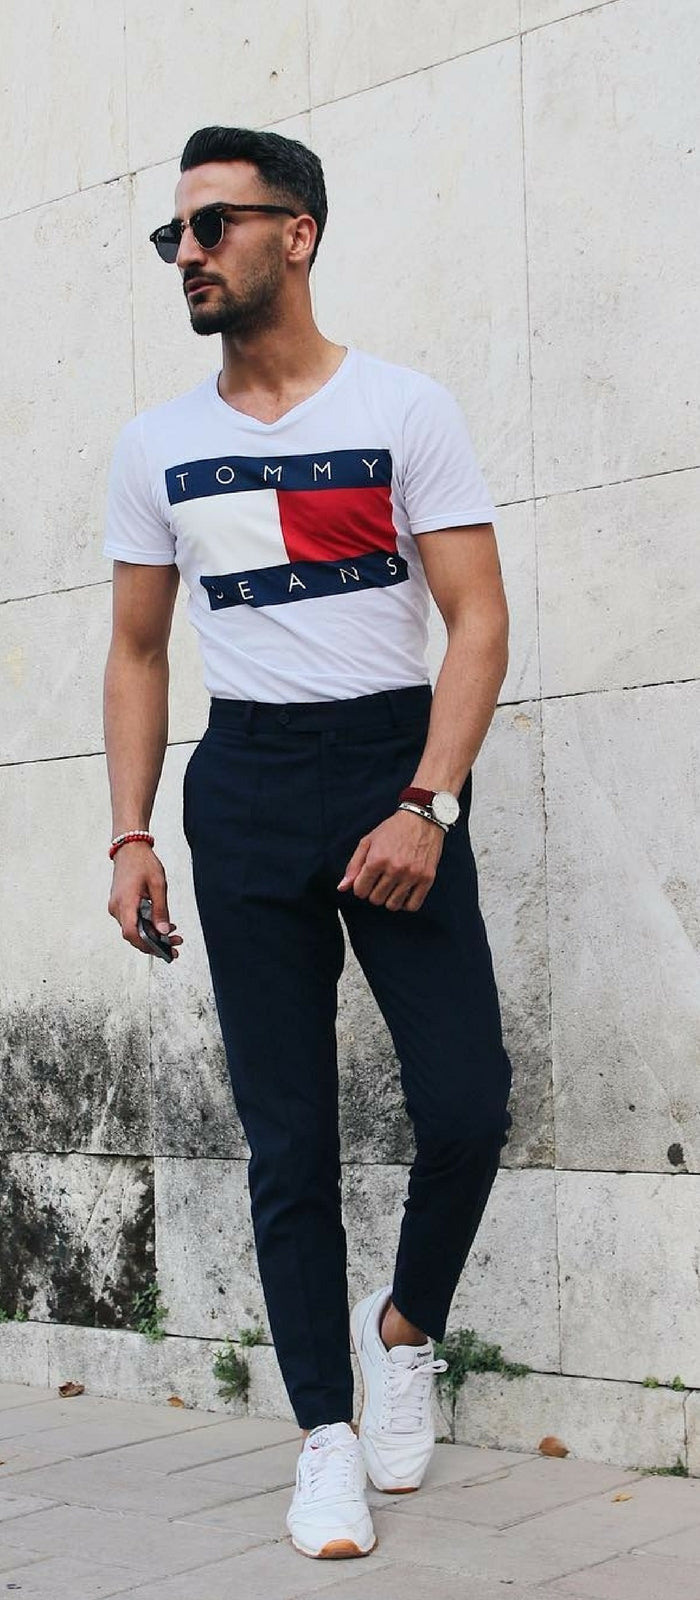 Smart & edgy outfit ideas for men